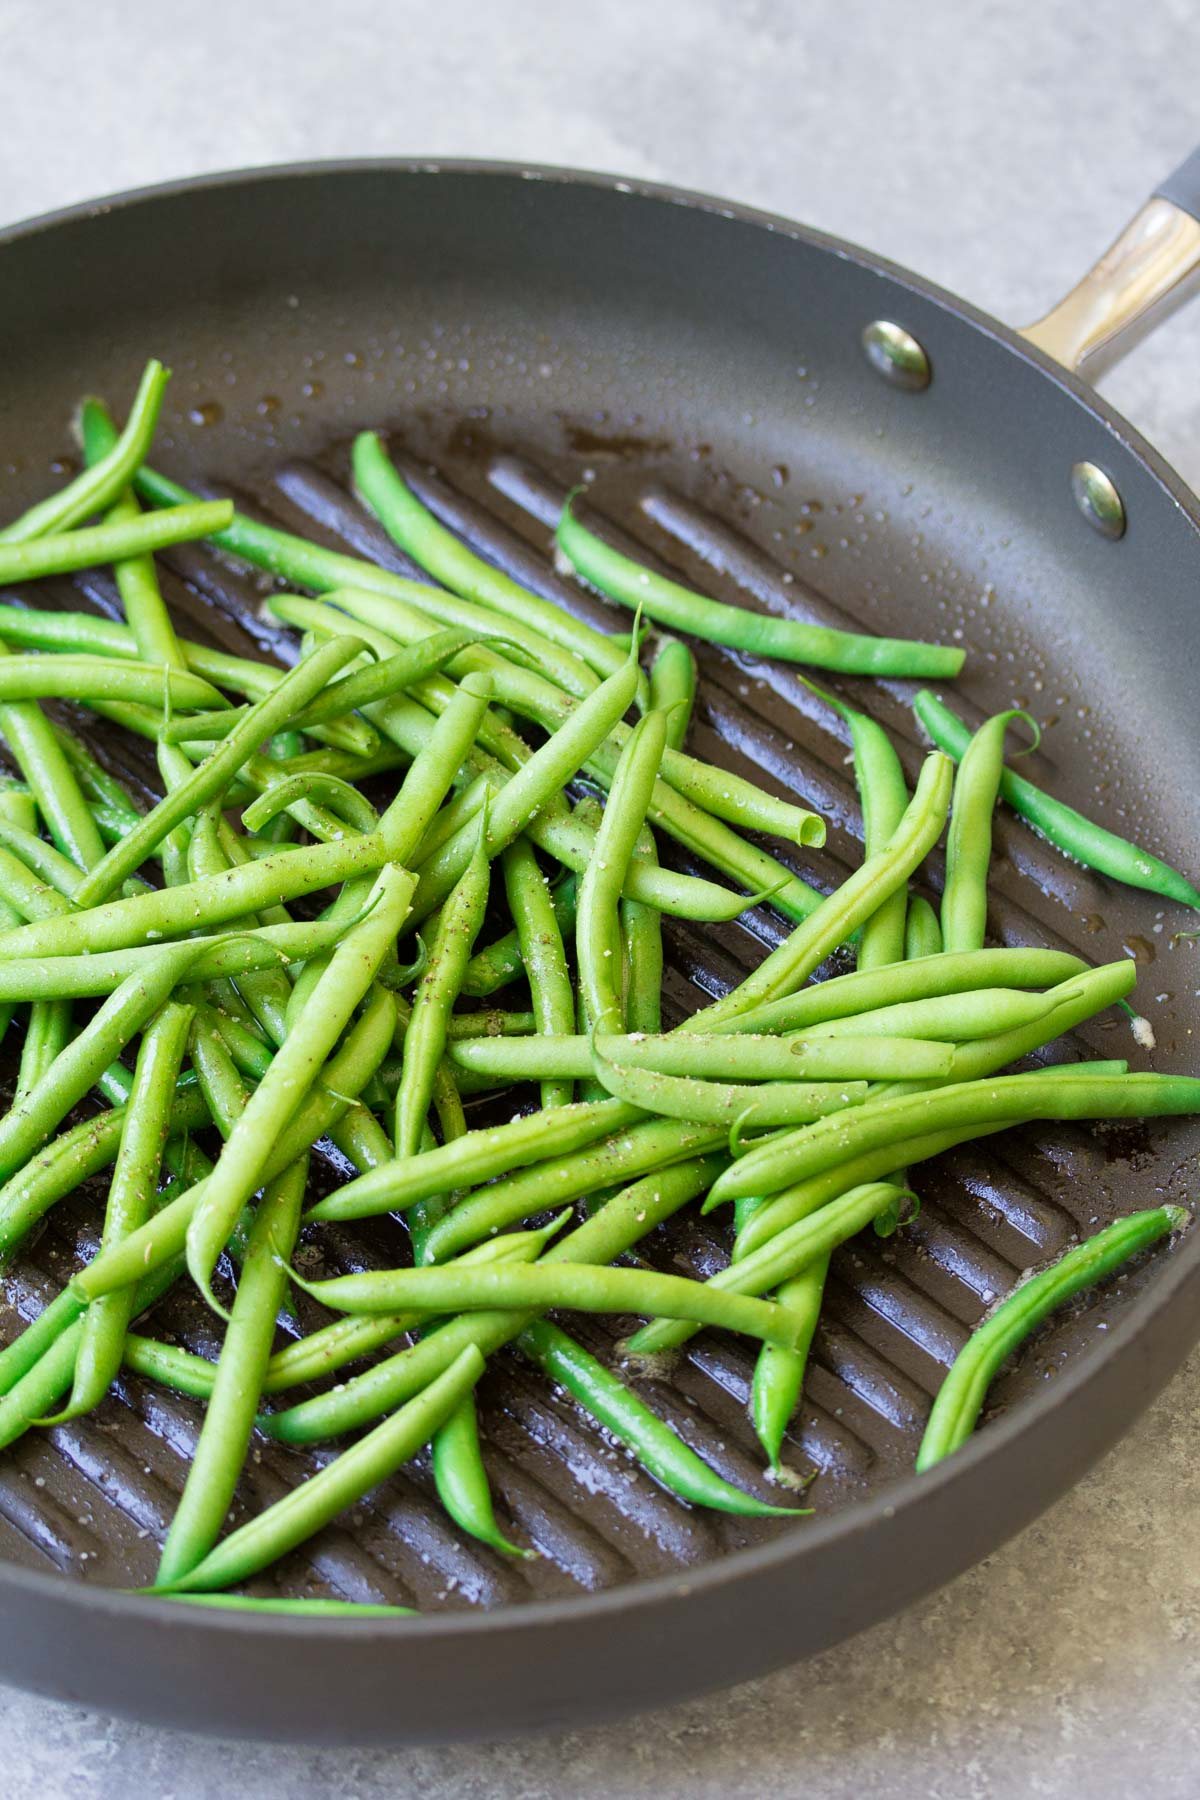 Crisp, fresh Skillet Parmesan Green Beans are an easy side dish that you'll want to make again and again! Only 3 ingredients in this healthy recipe! | www.kristineskitchenblog.com